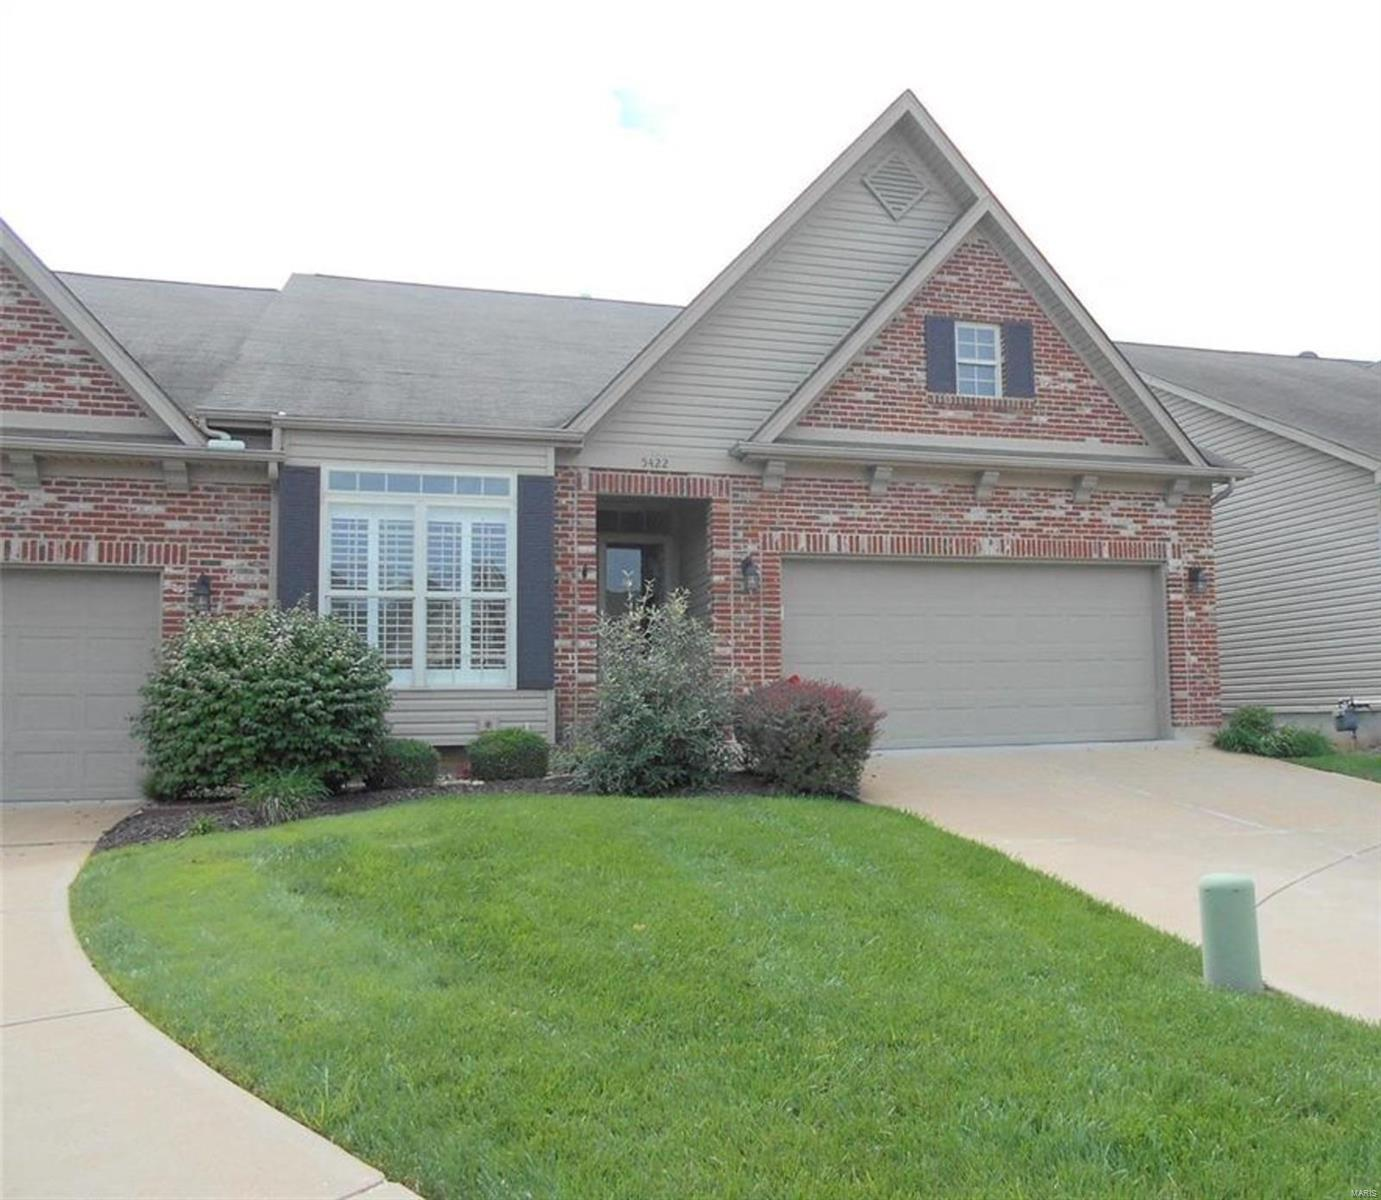 5422 Ivy Summit Court Property Photo - St Louis, MO real estate listing